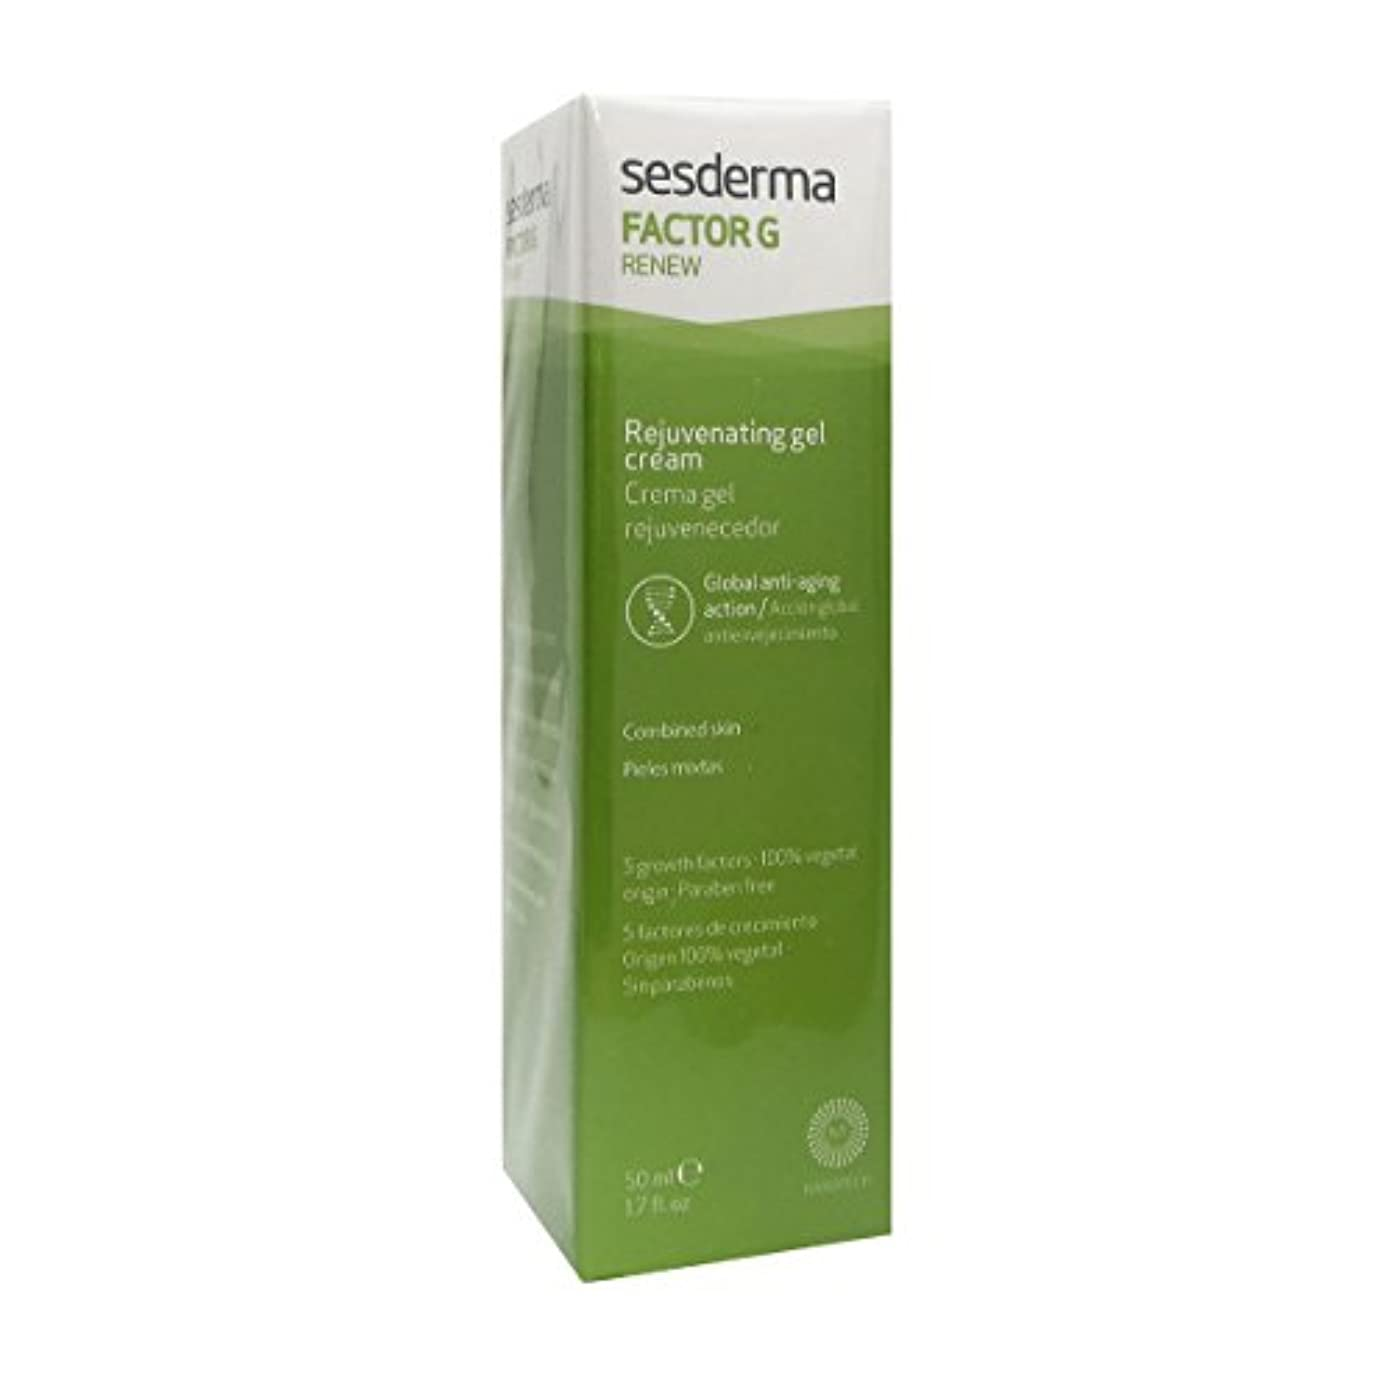 文販売員有名人Sesderma Factor G Renew Cream Facial Cream 50ml [並行輸入品]